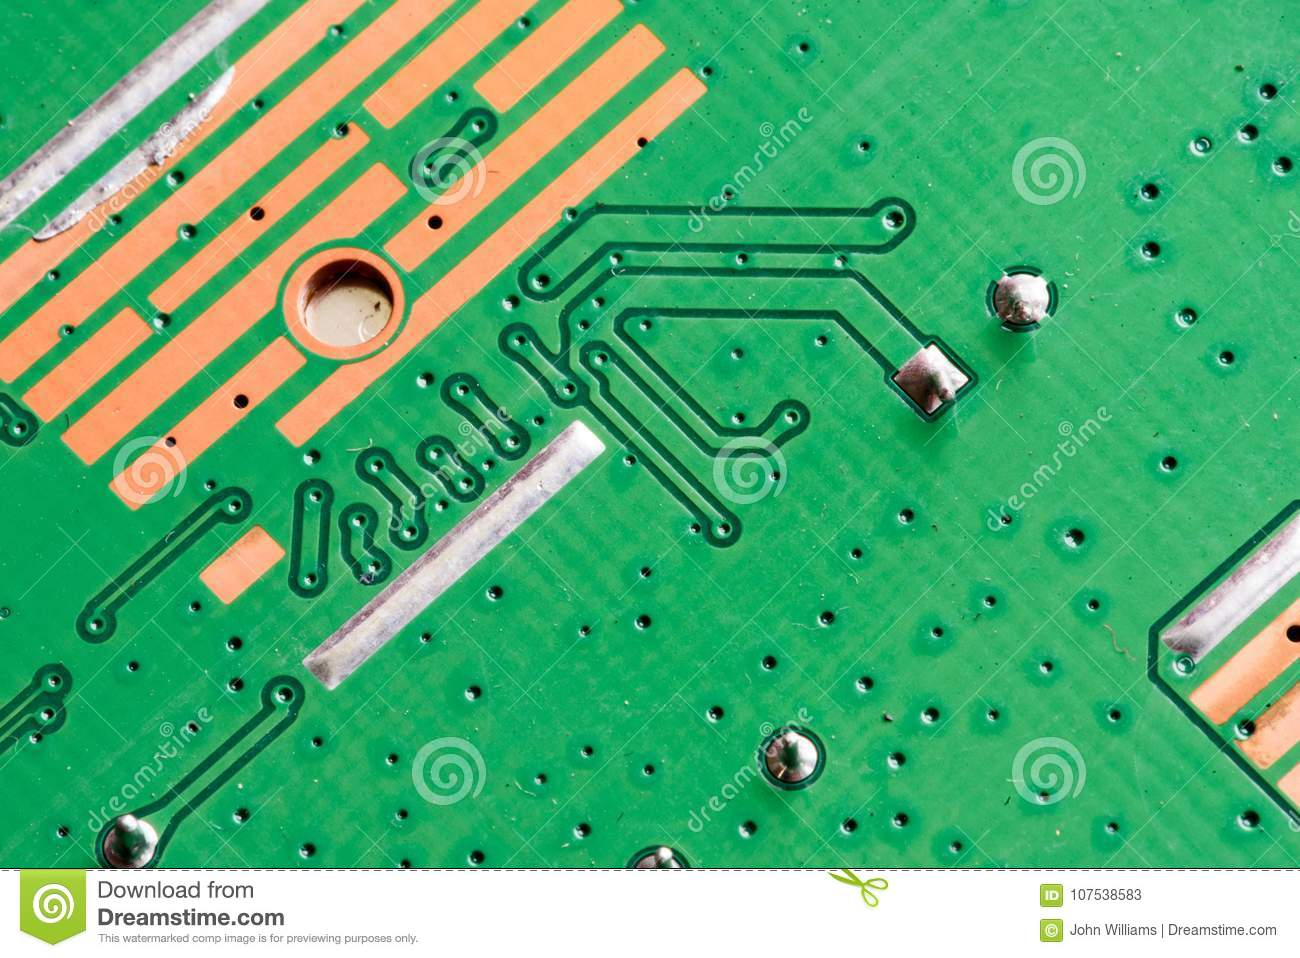 Electronic Pcb Printed Circuit Board Stock Image Of With Transistors In Macro Close Up Circuitry And Electric Hardware Elements Including Computer Chip Copy Space For